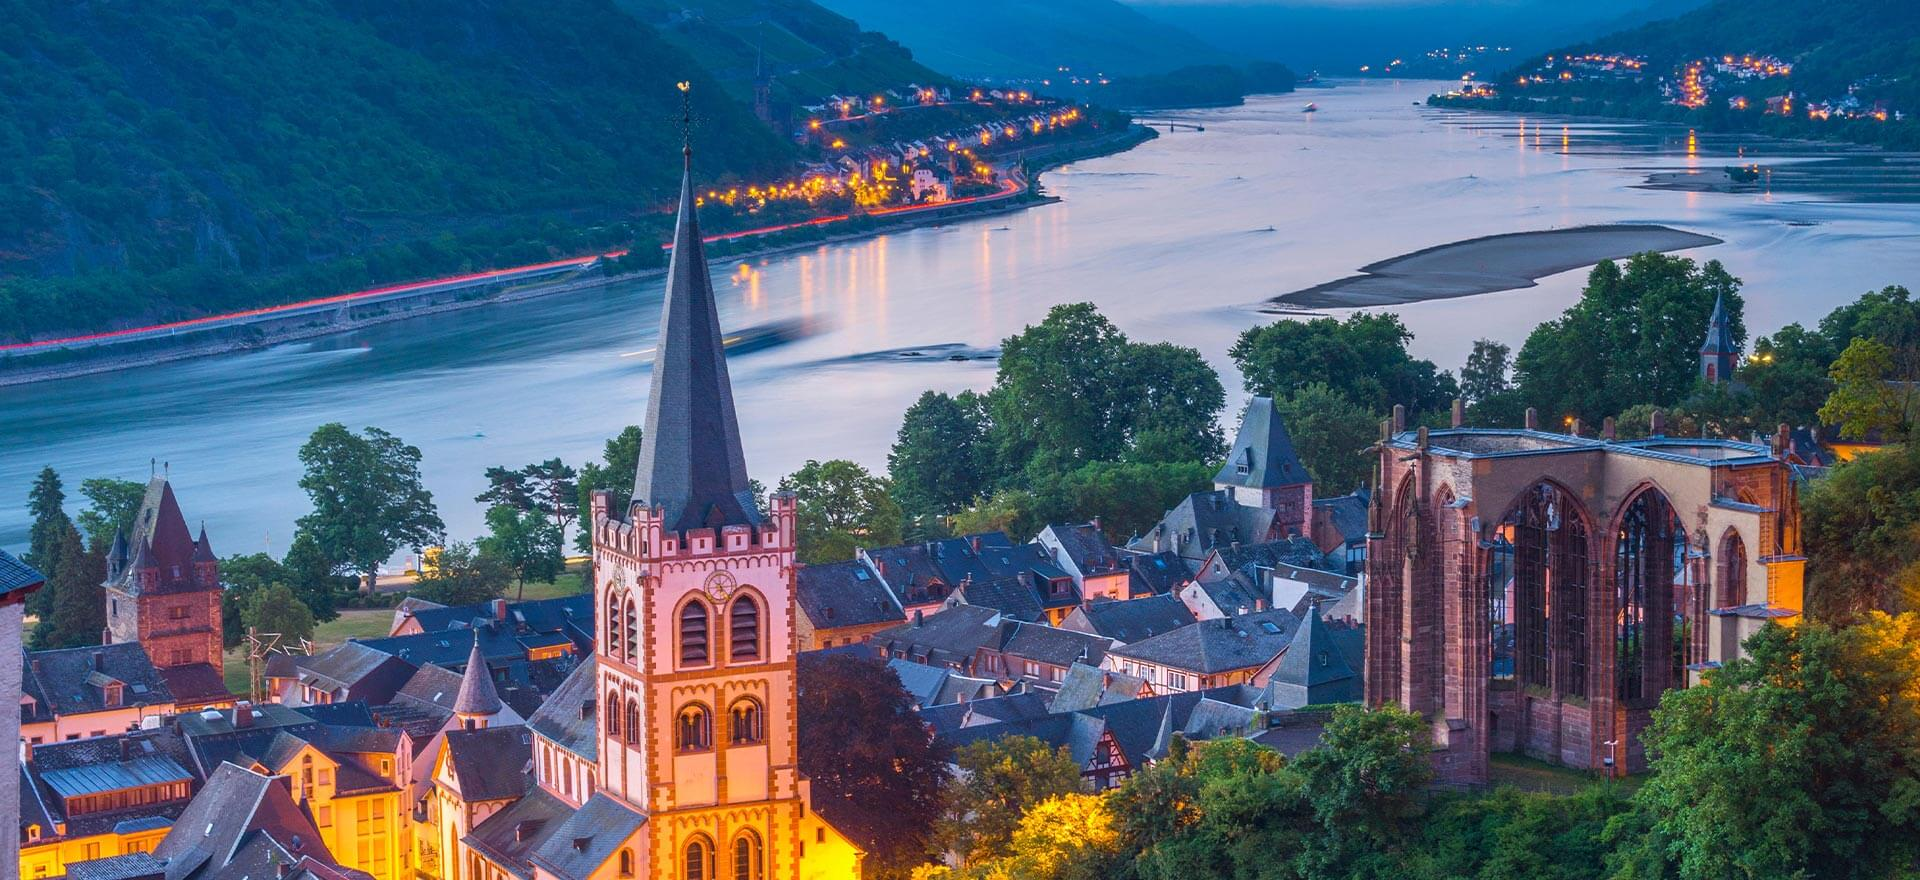 Bacharach on the River Rhine